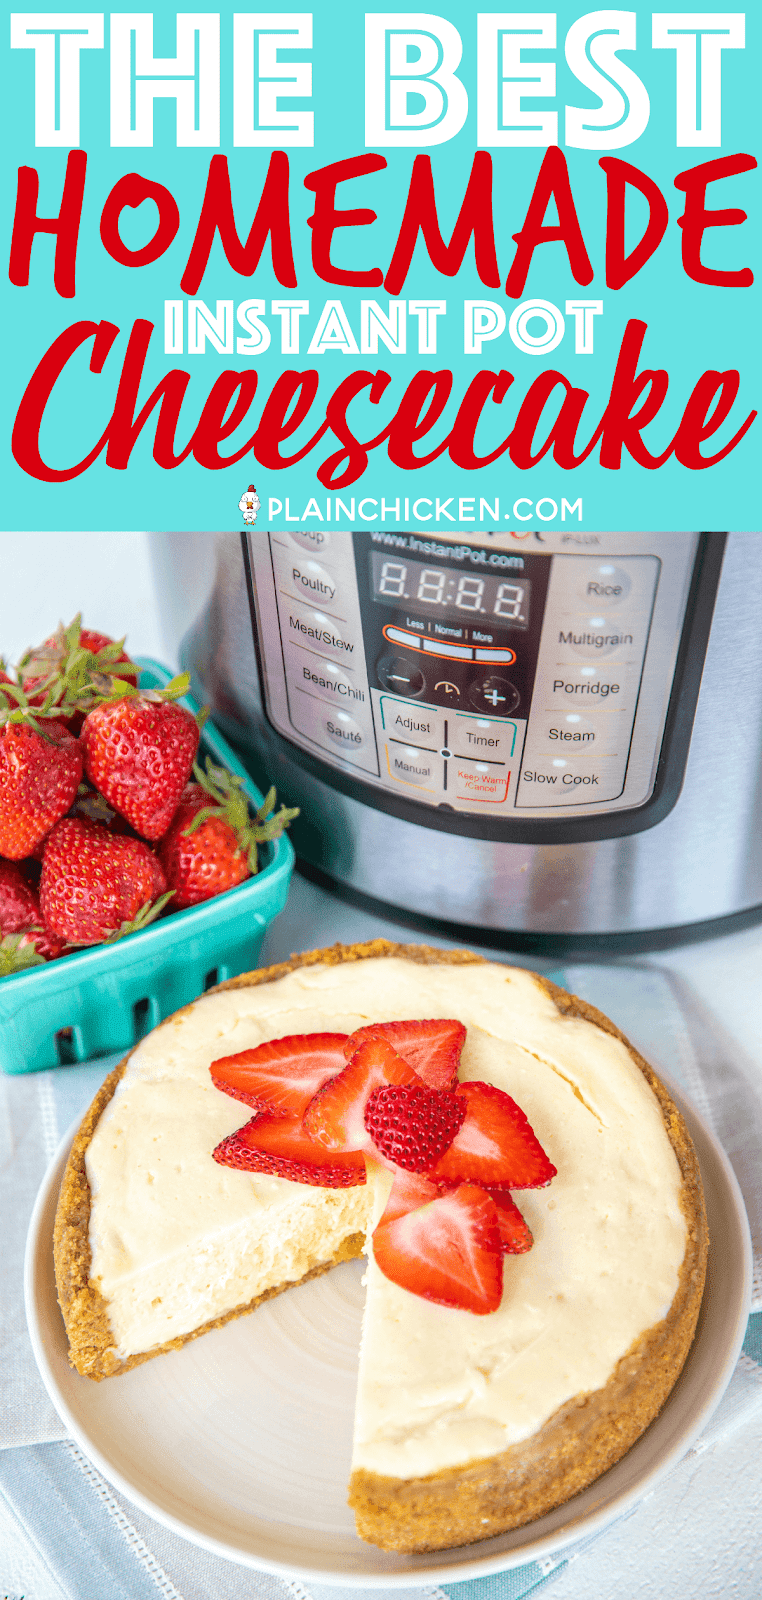 The Best Homemade Instant Pot Cheesecake - hands down the BEST cheesecake I've ever eaten. SO light and fluffy! I could eat the whole thing in about 5 minutes flat!!! Graham crackers, butter, sugar, cream cheese, eggs, dash of lemon juice and vanilla. SO simple and SOOOO delicious! I give these as holiday gifts and everyone asks for the recipe. You MUST make this ASAP! #instantpot #cheesecake #dessert